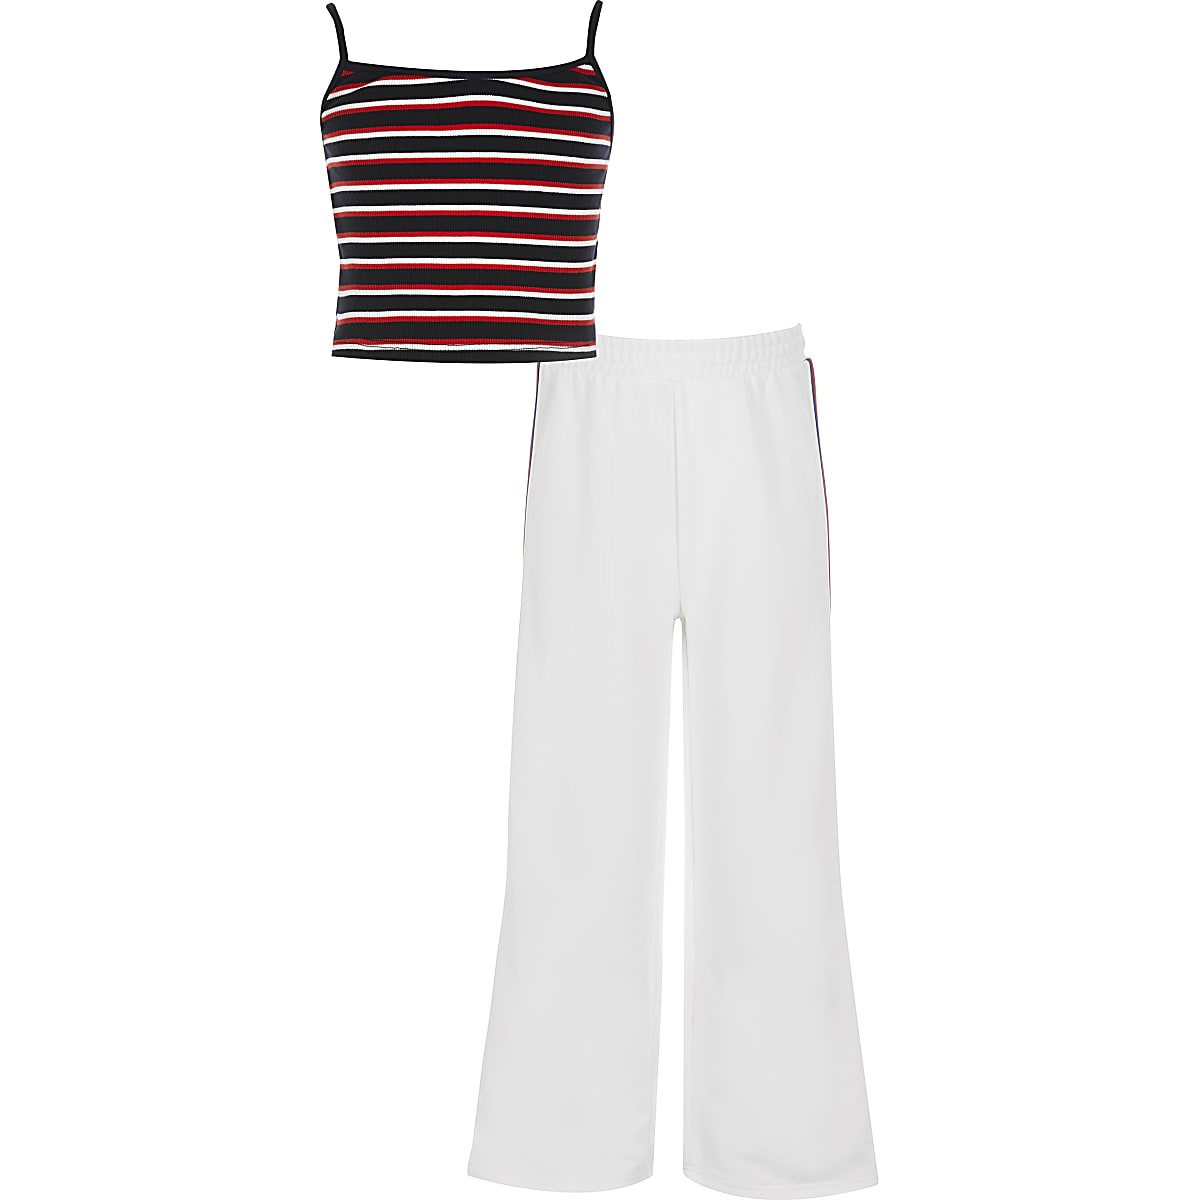 Girls white stripe jogger outfit